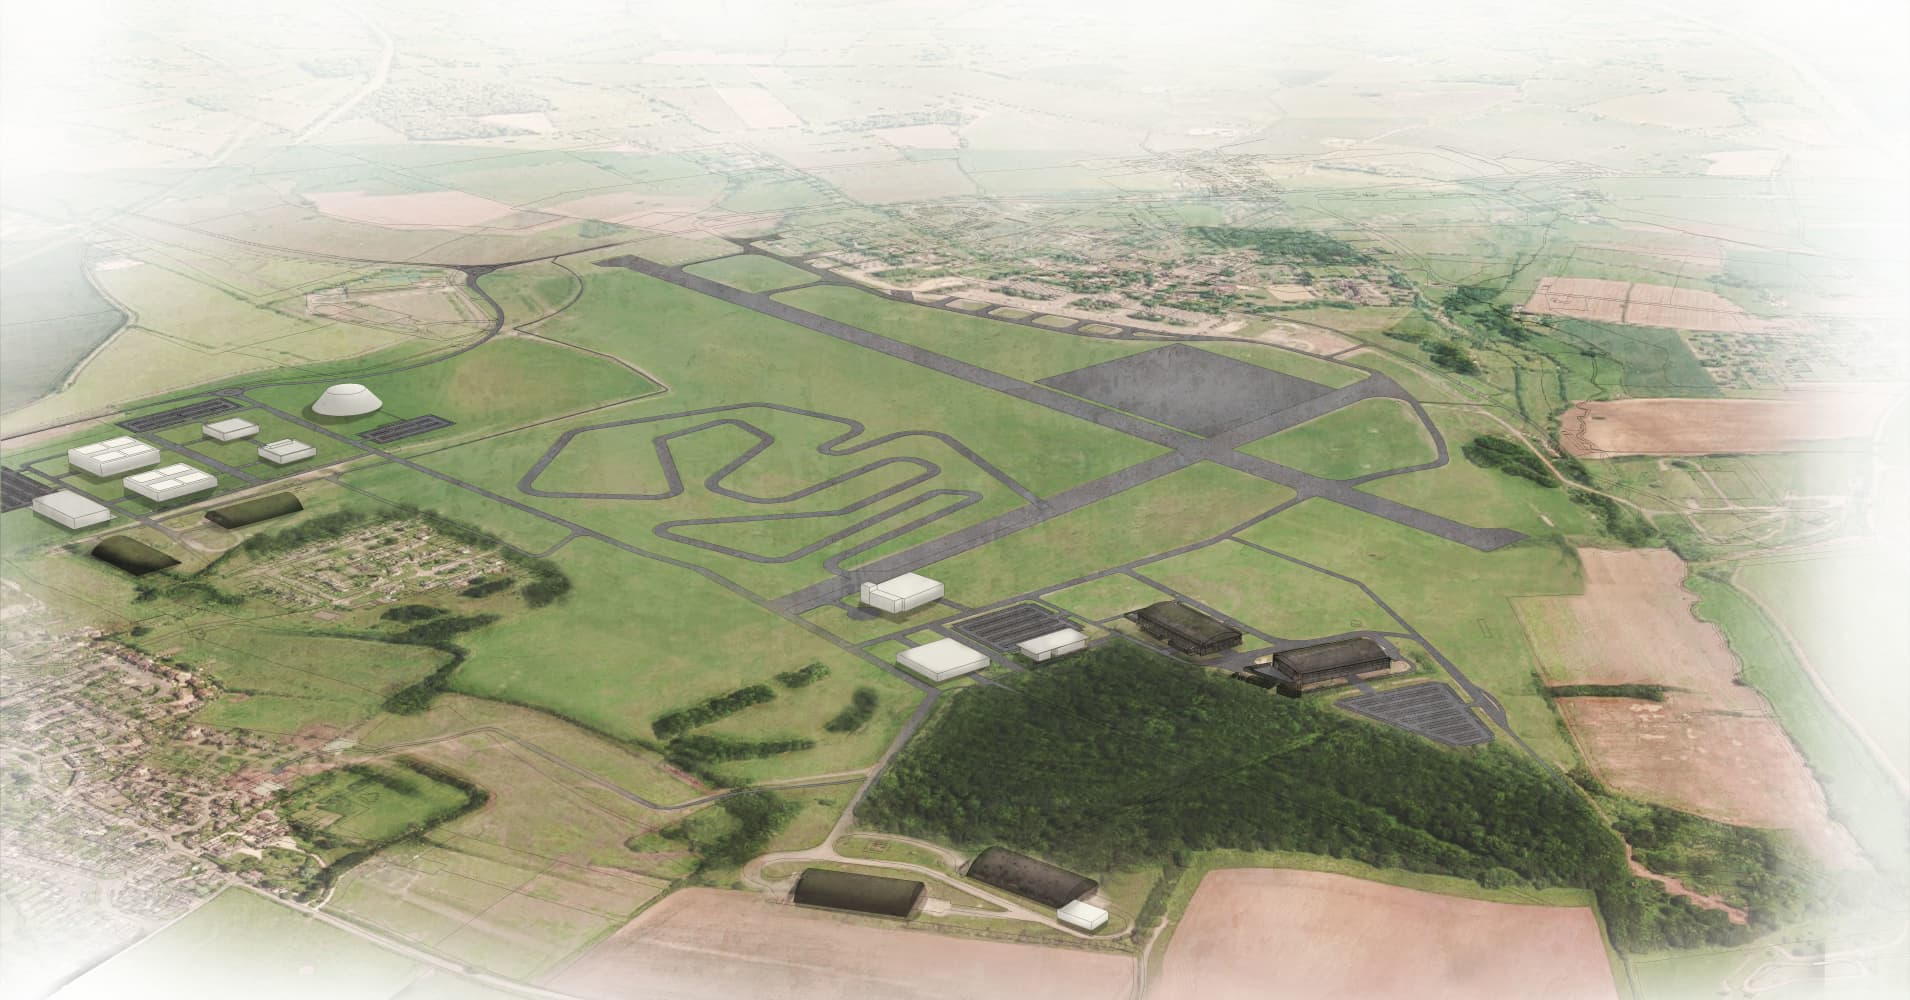 Dyson unveils plans for extensive electric vehicle testing site